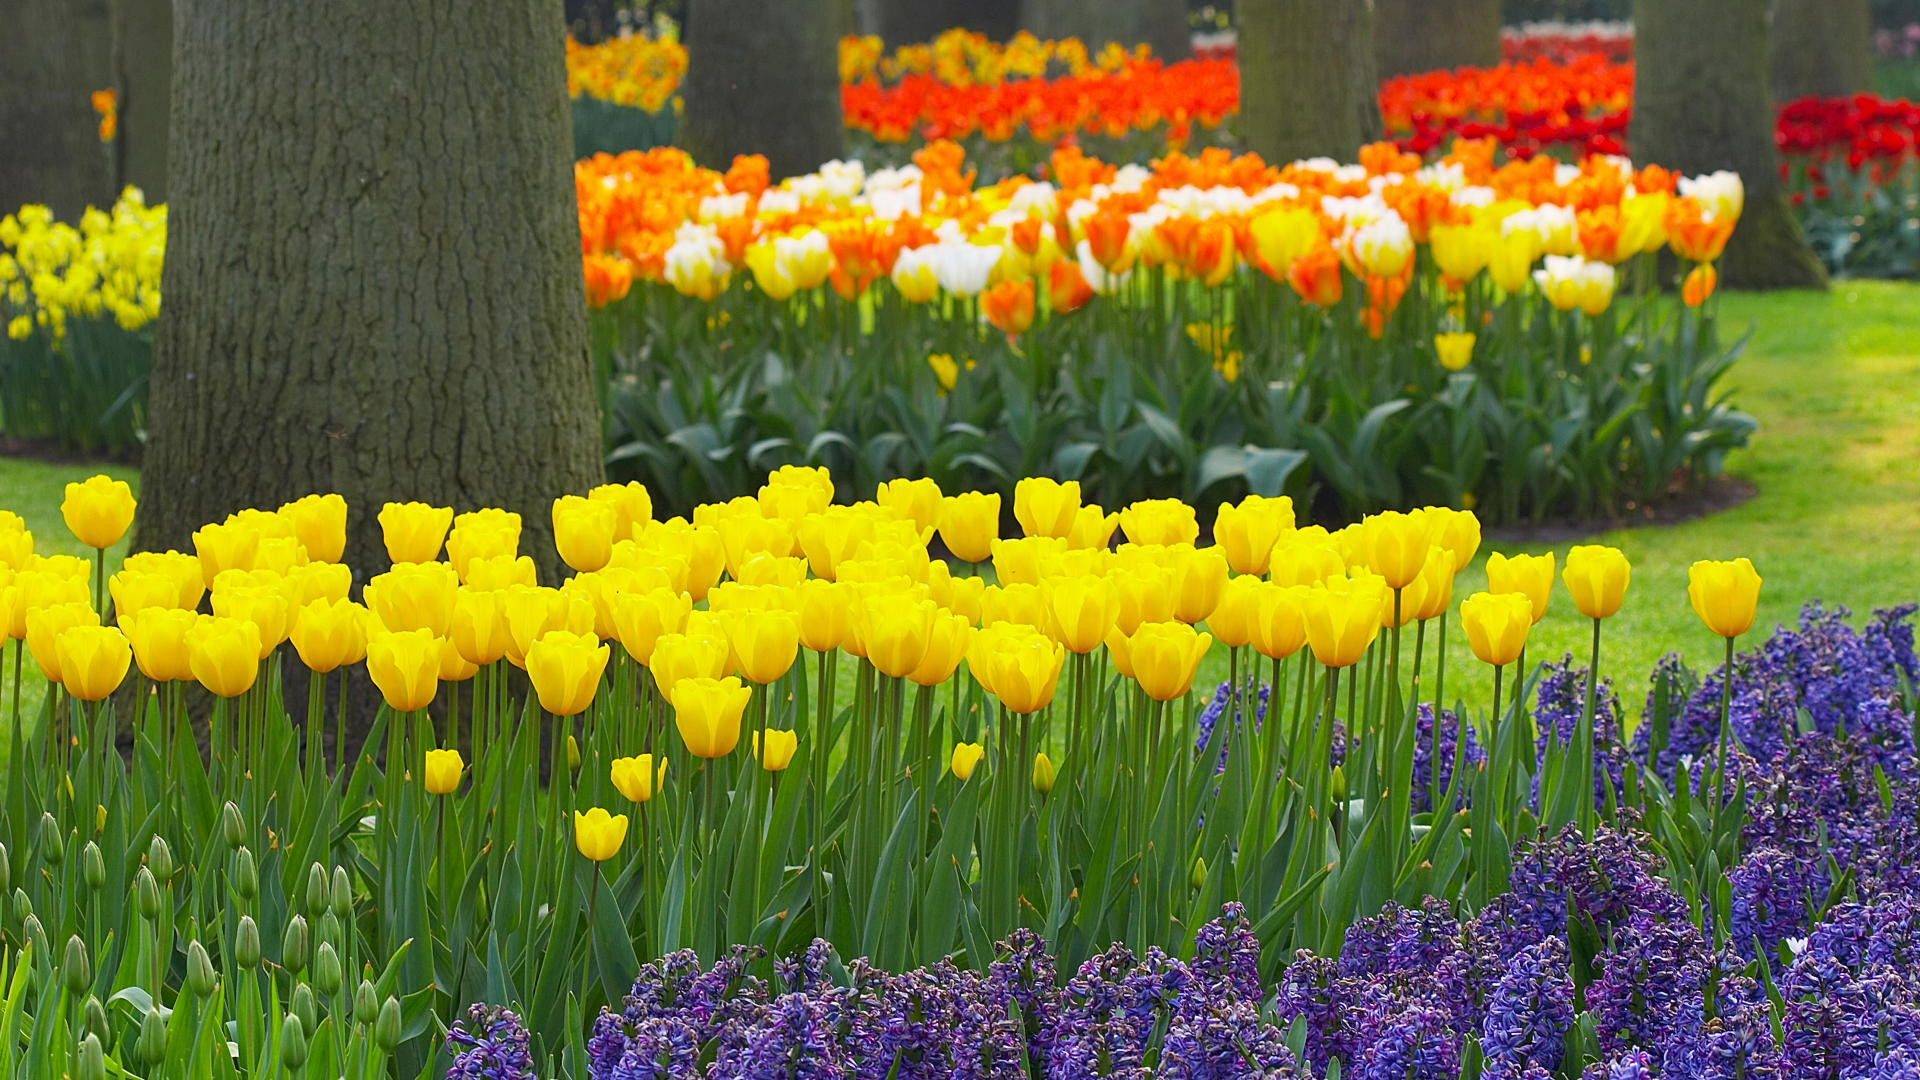 1920x1080 hd flower garden wallpaper. Â«Â«